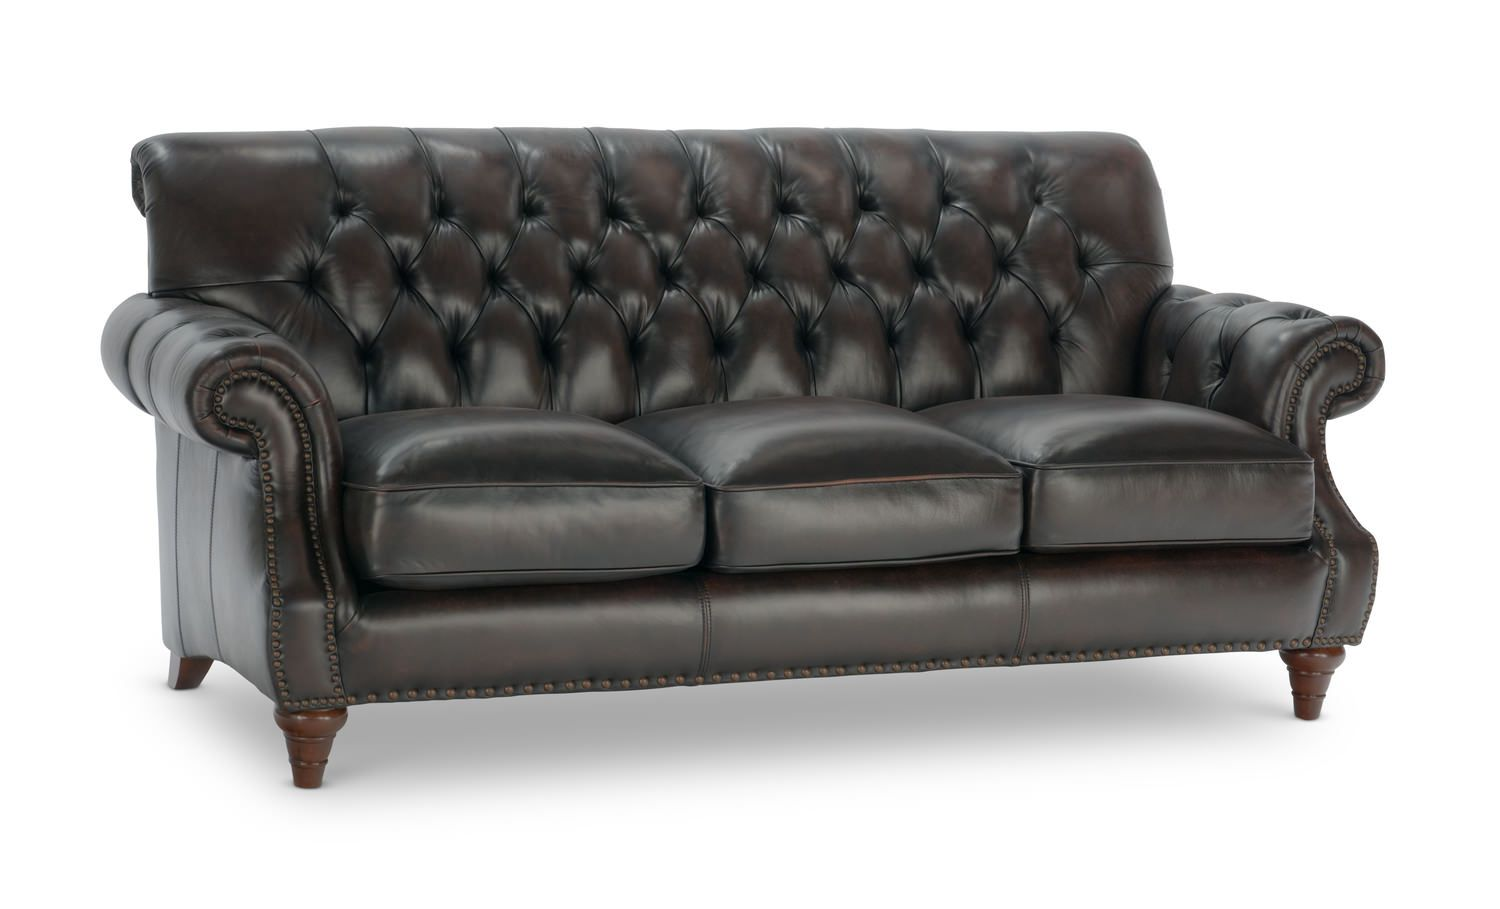 wilson leather sofa hom furniture living room leather sofa rh pinterest com